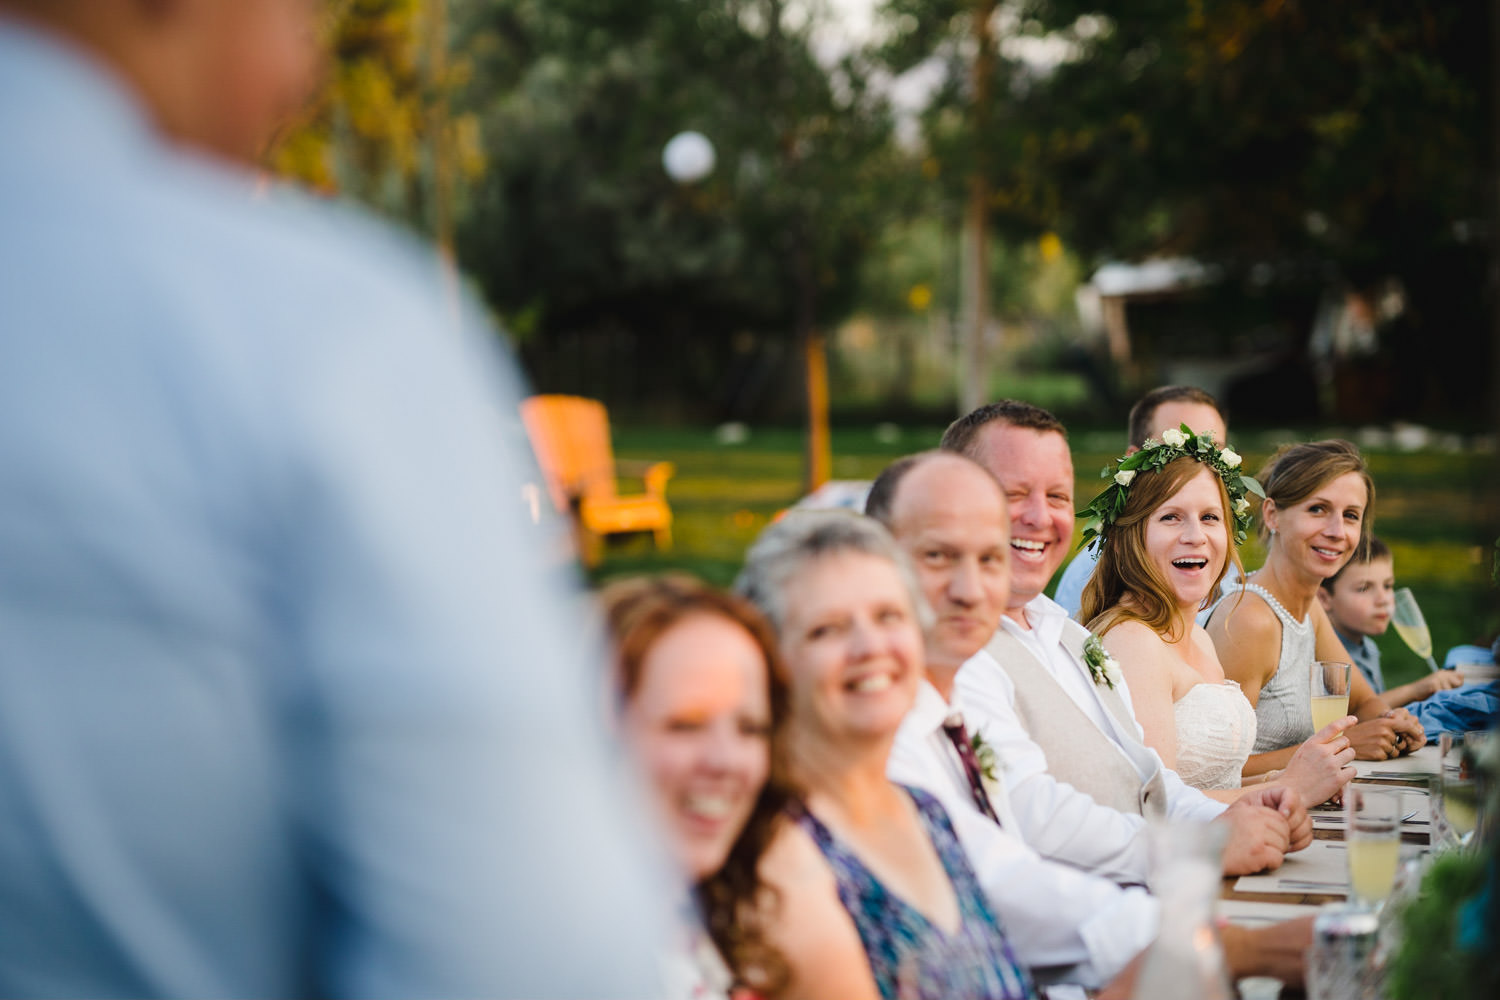 Spring Farm wedding guests smiling at reception photo